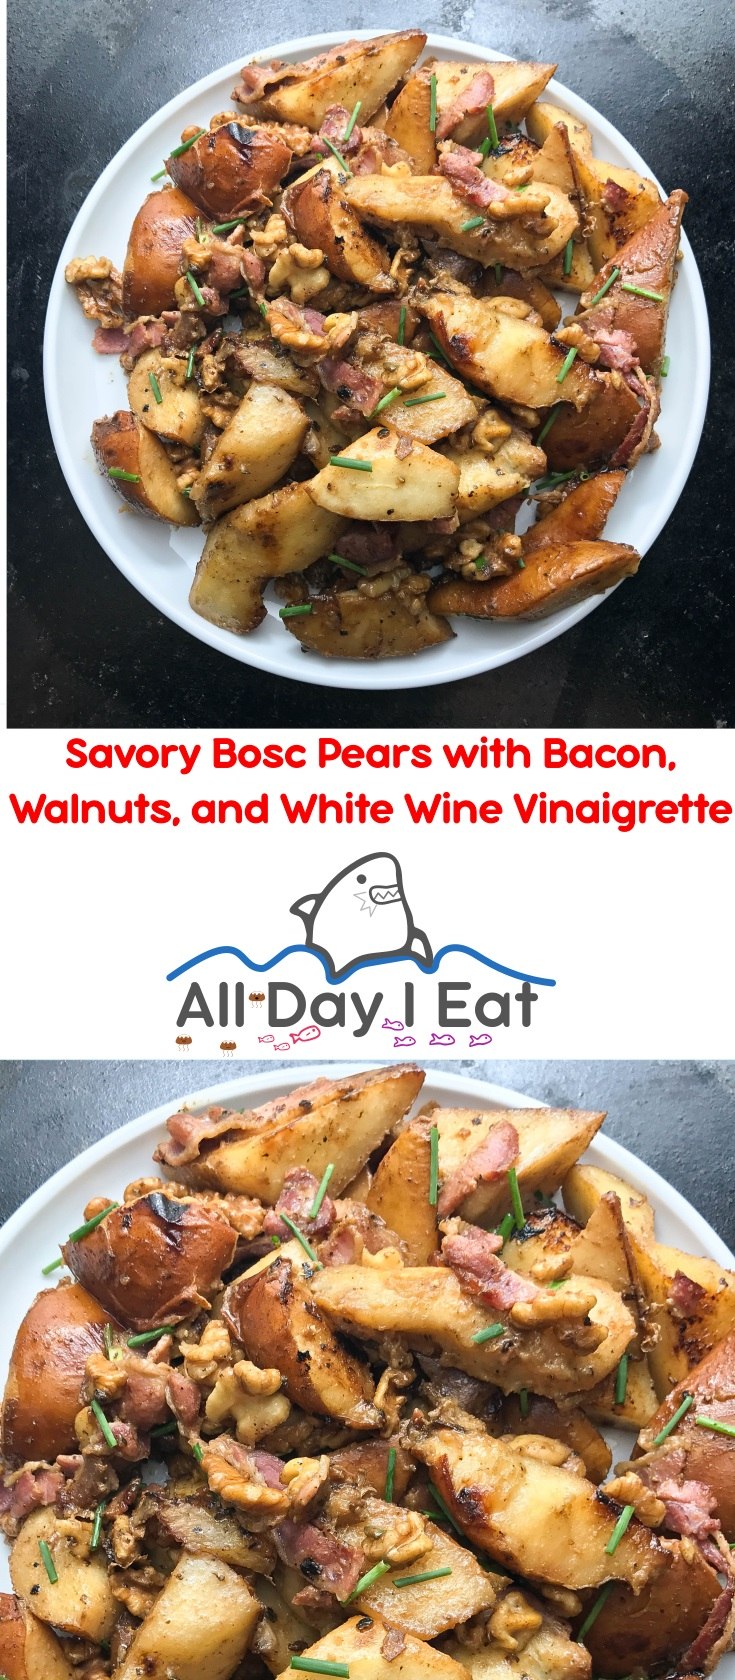 Savory Bosc Pears with Bacon, Walnuts, and White Wine Vinaigrette | www.alldayieat.com